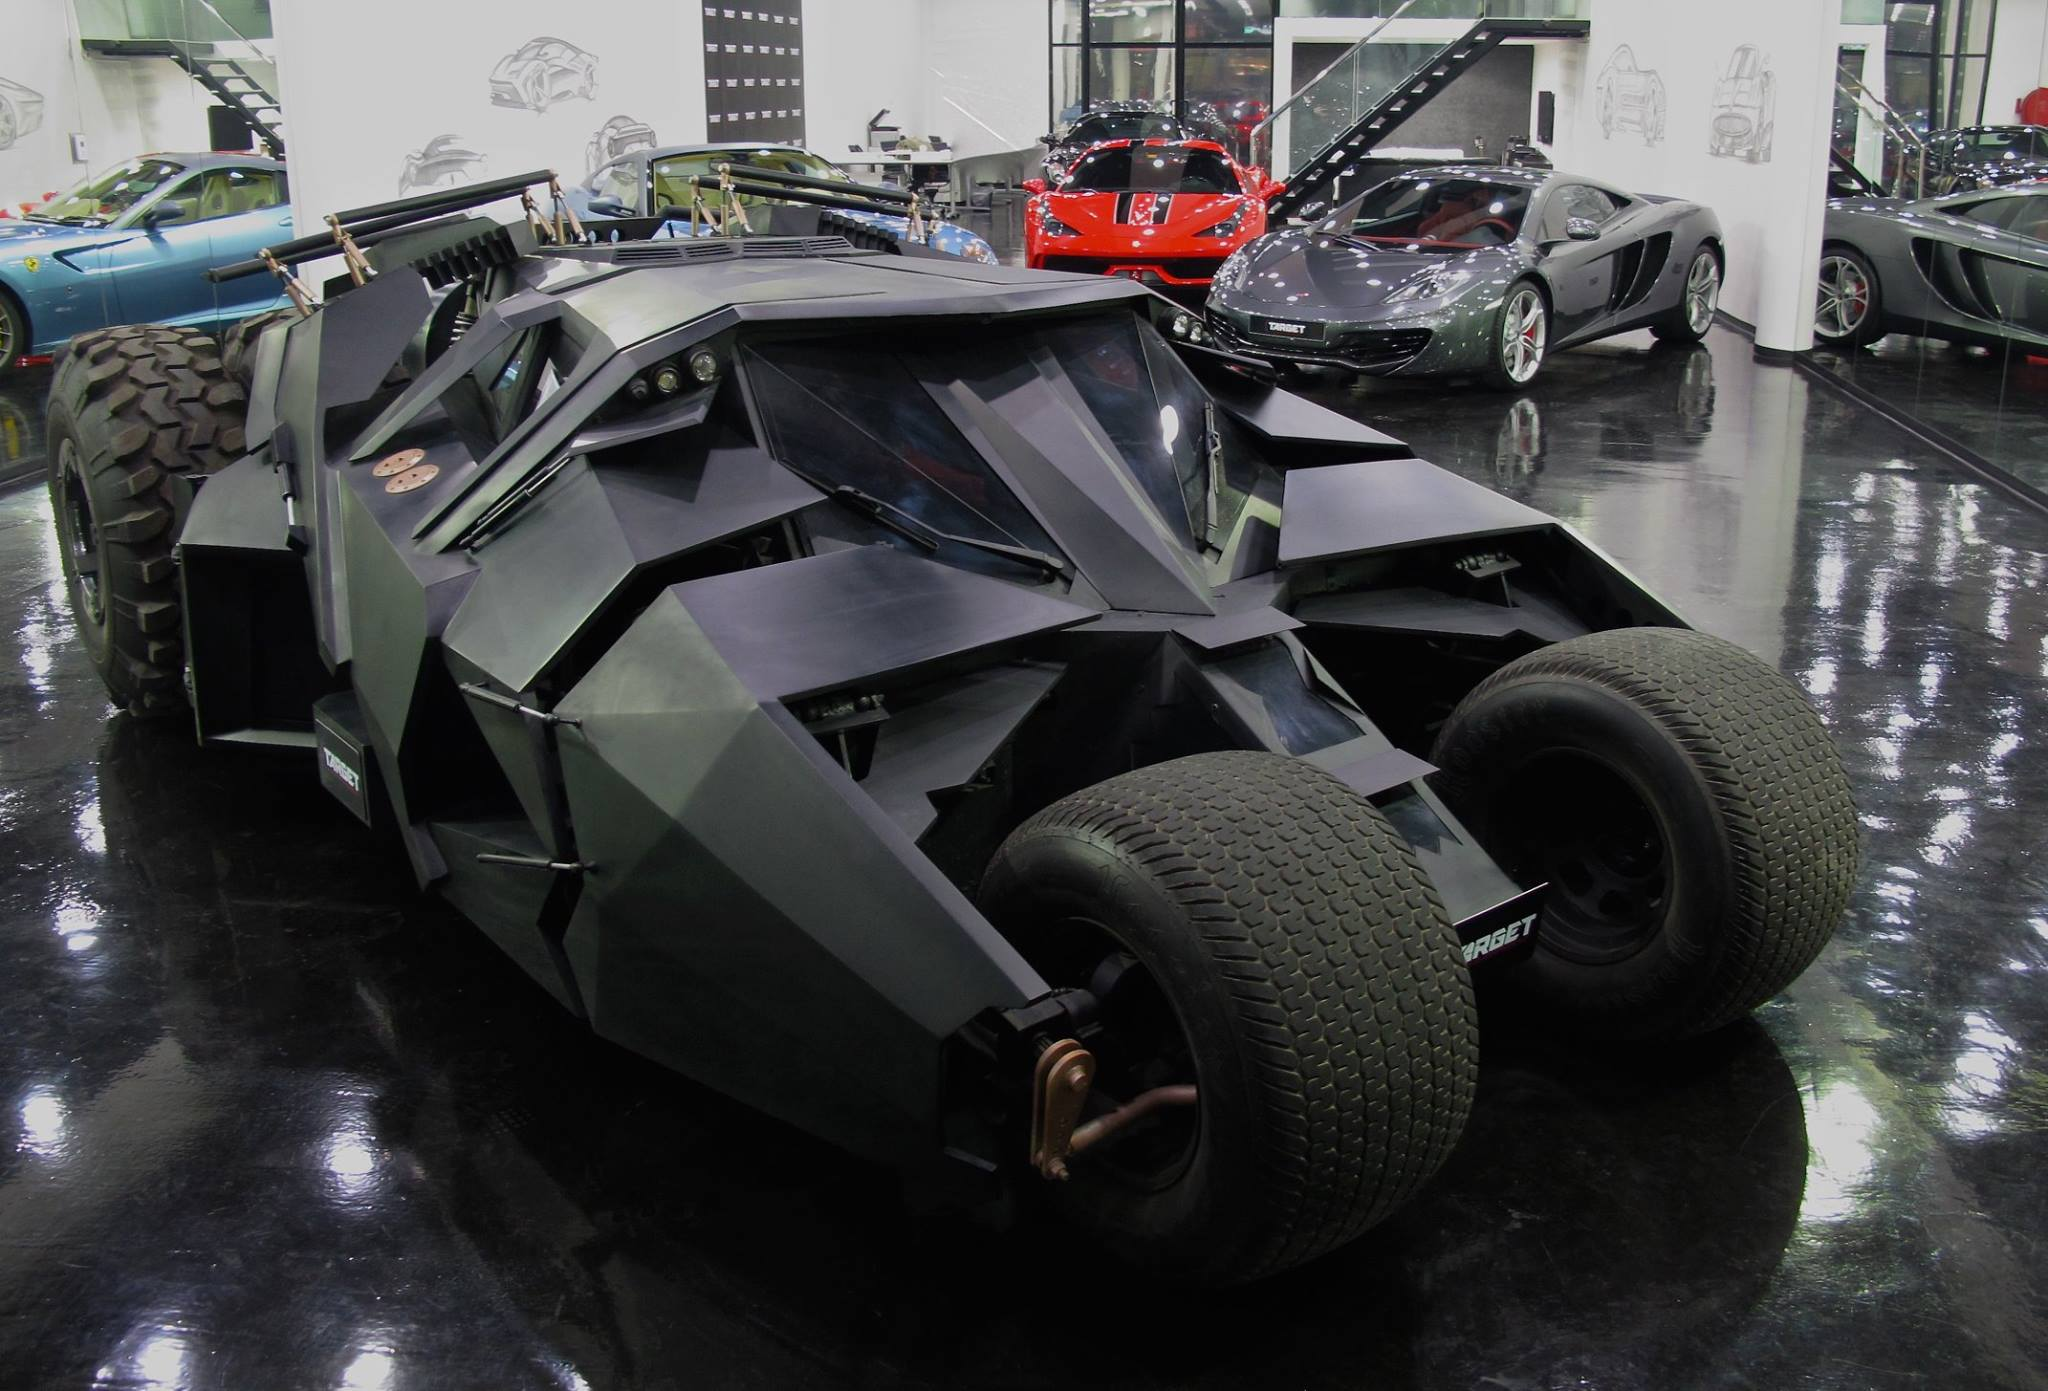 Tumbler Batmobile And Tron Bike For Sale In Dubai Luxury Dealership Autoevolution